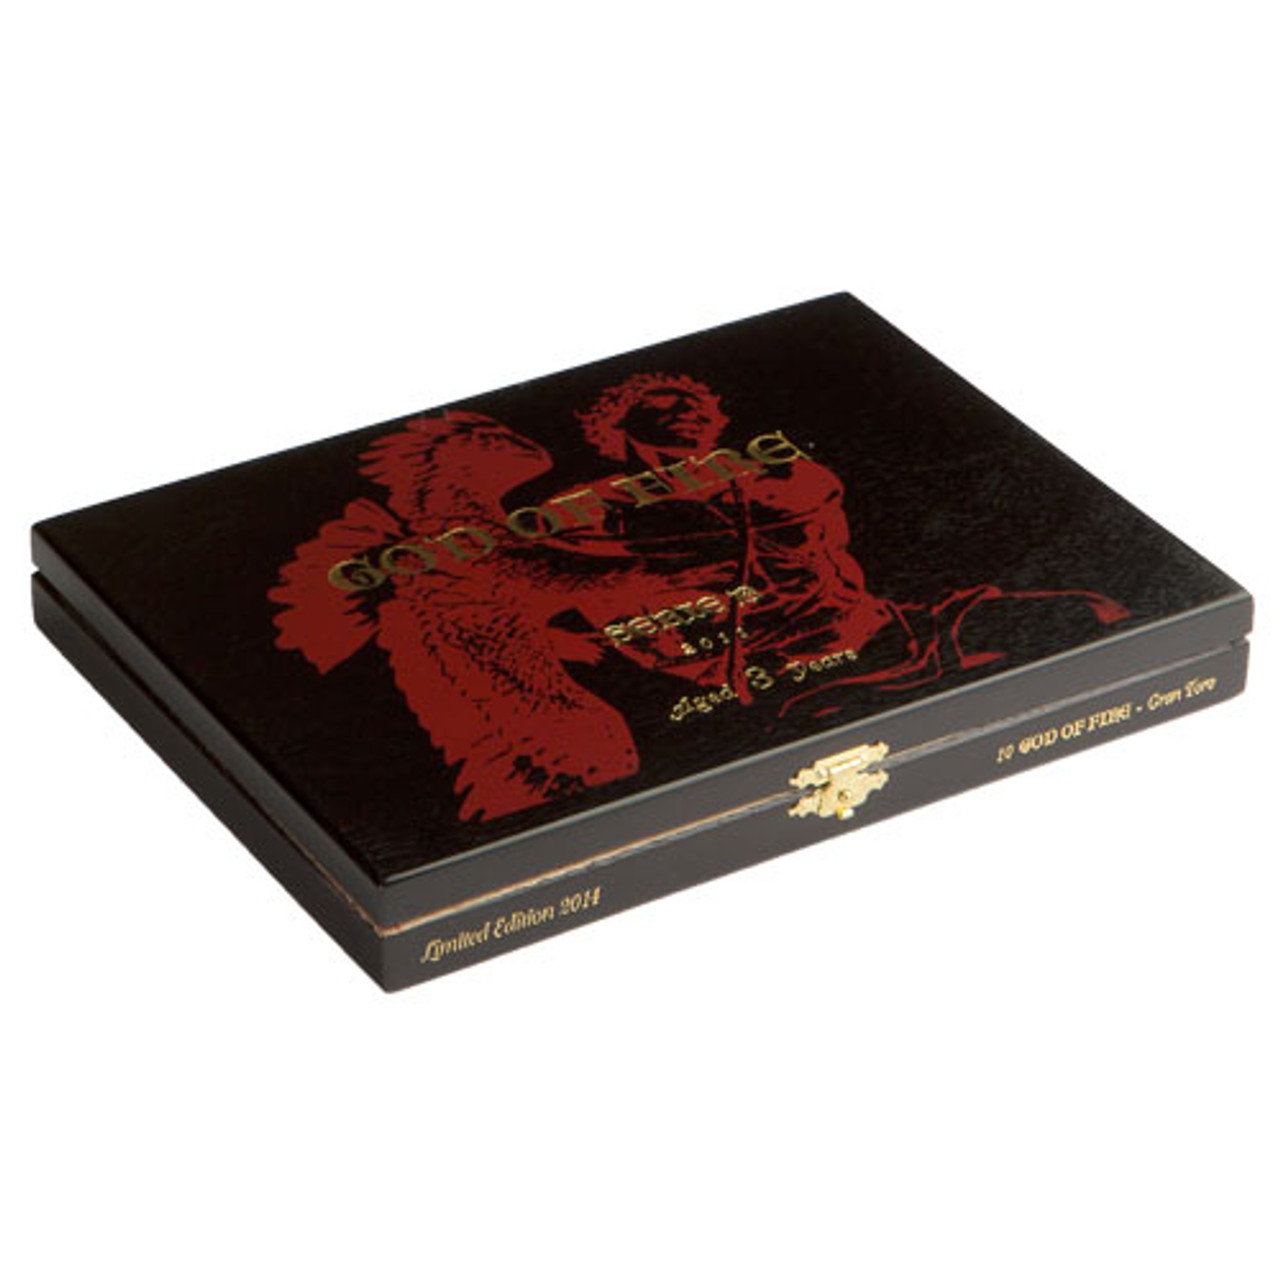 God of Fire Serie B Double Robusto Cigars - 6 x 56 (Box of 10)